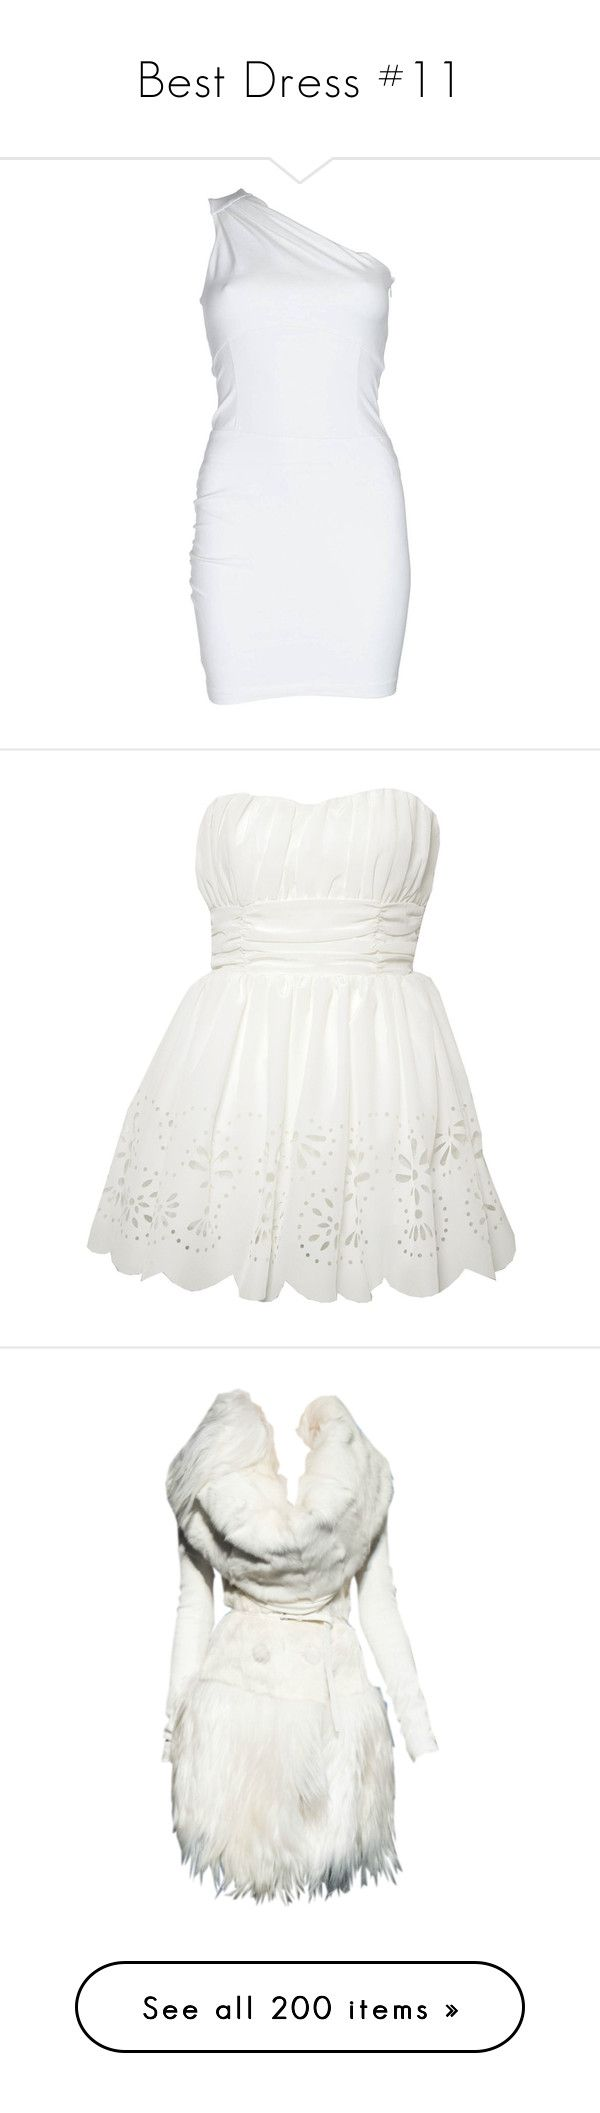 """""""Best Dress #11"""" by jewelsinthecrown ❤ liked on Polyvore featuring dresses, women, white color dress, white dress, stretch dress, white corset dress, white zipper dress, vestidos, short dresses and vestiti"""